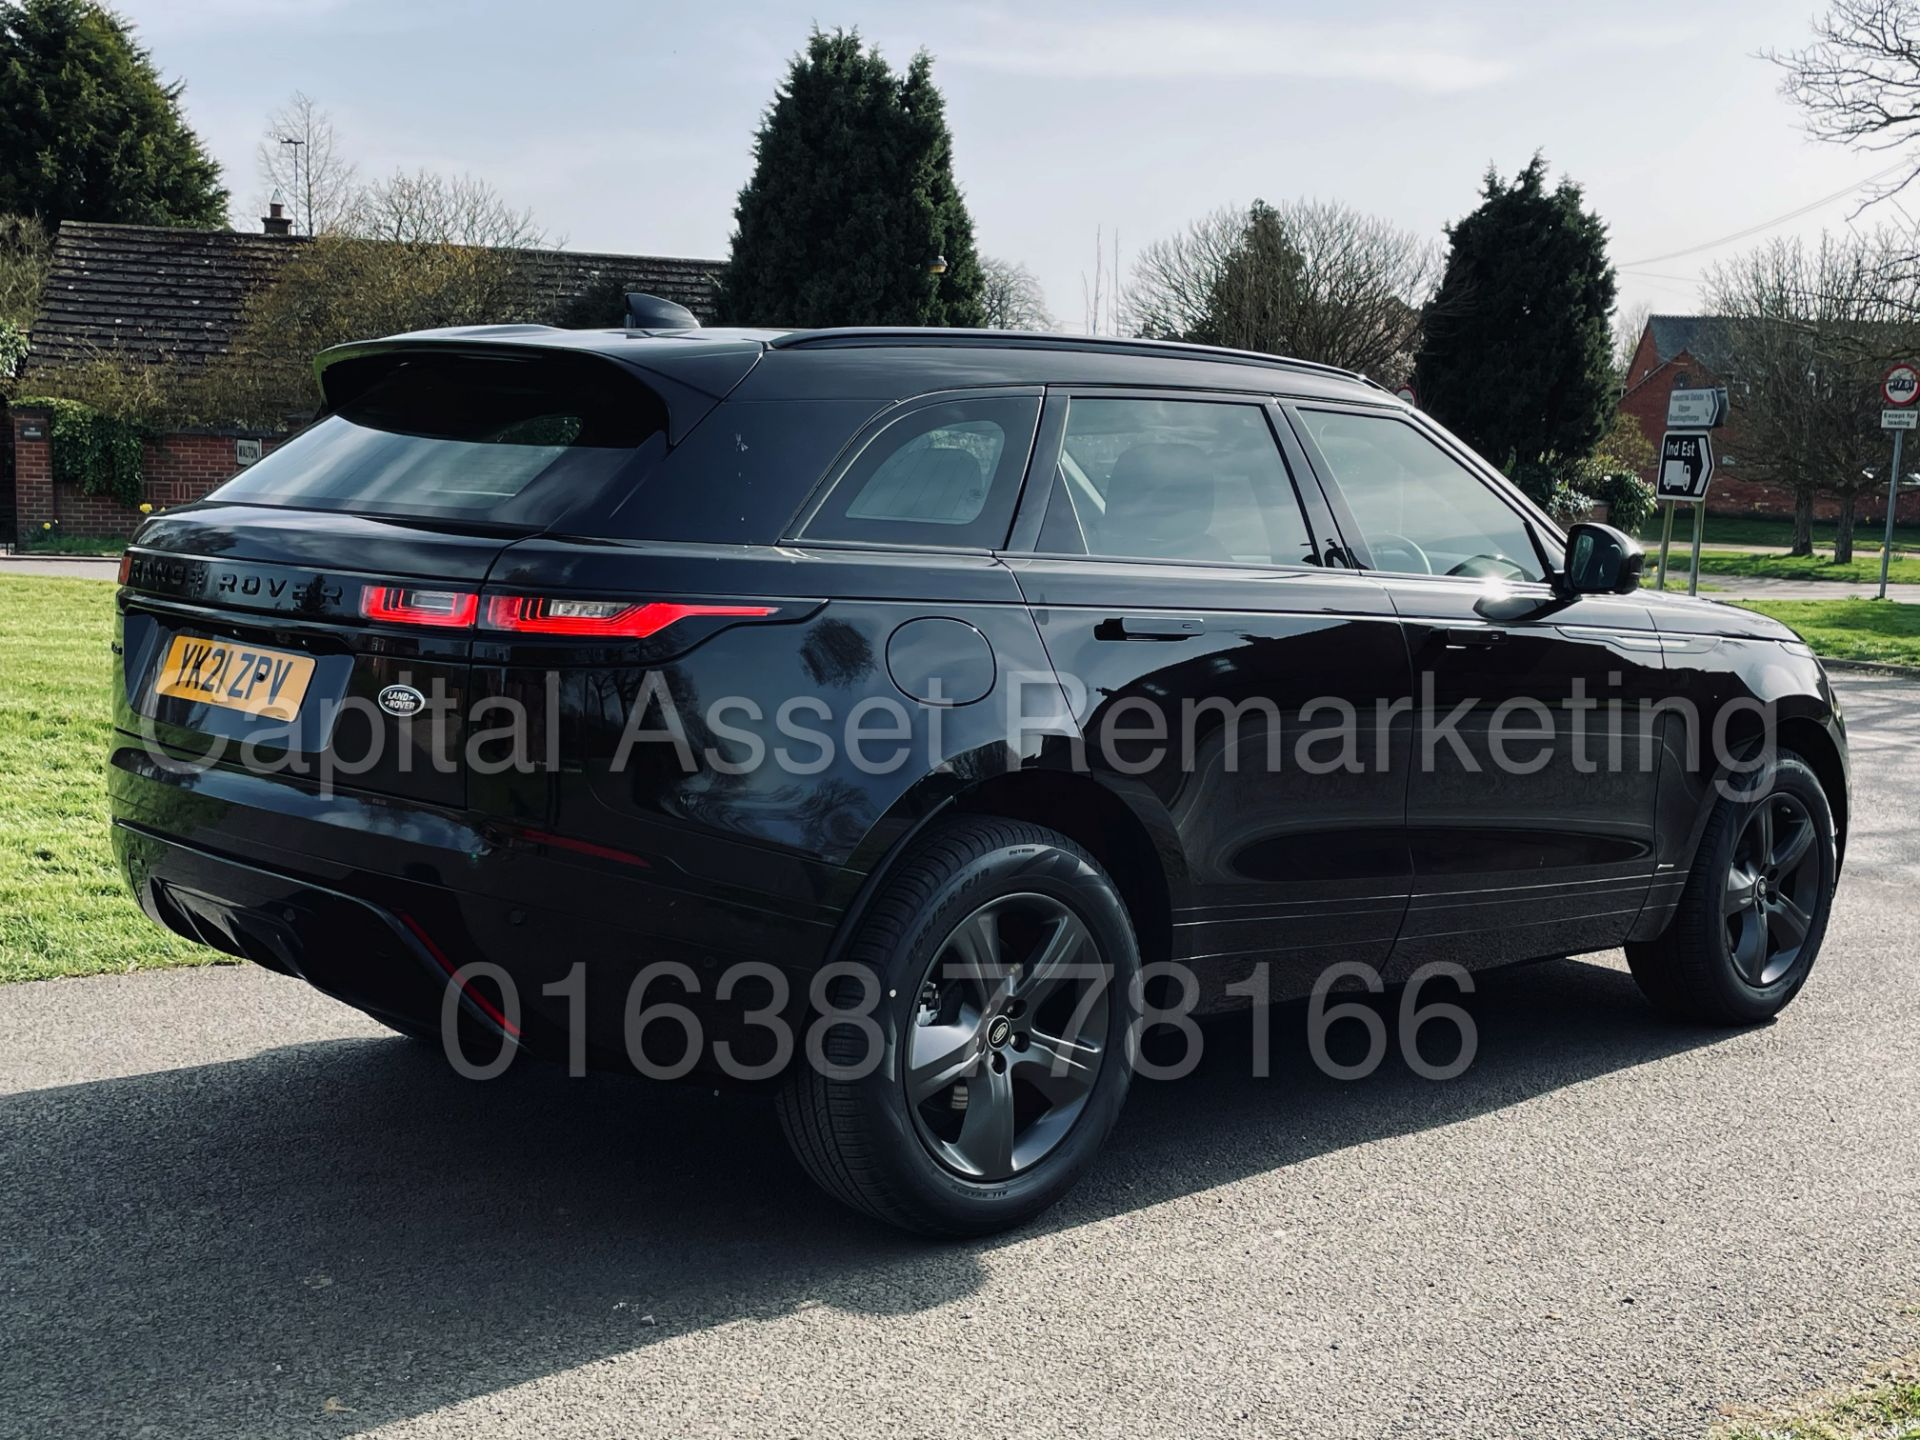 (On Sale) RANGE ROVER VELAR *R-DYNAMIC* SUV (2021) *8 SPEED AUTO - LEATHER* (DELIVERY MILES) - Image 13 of 50